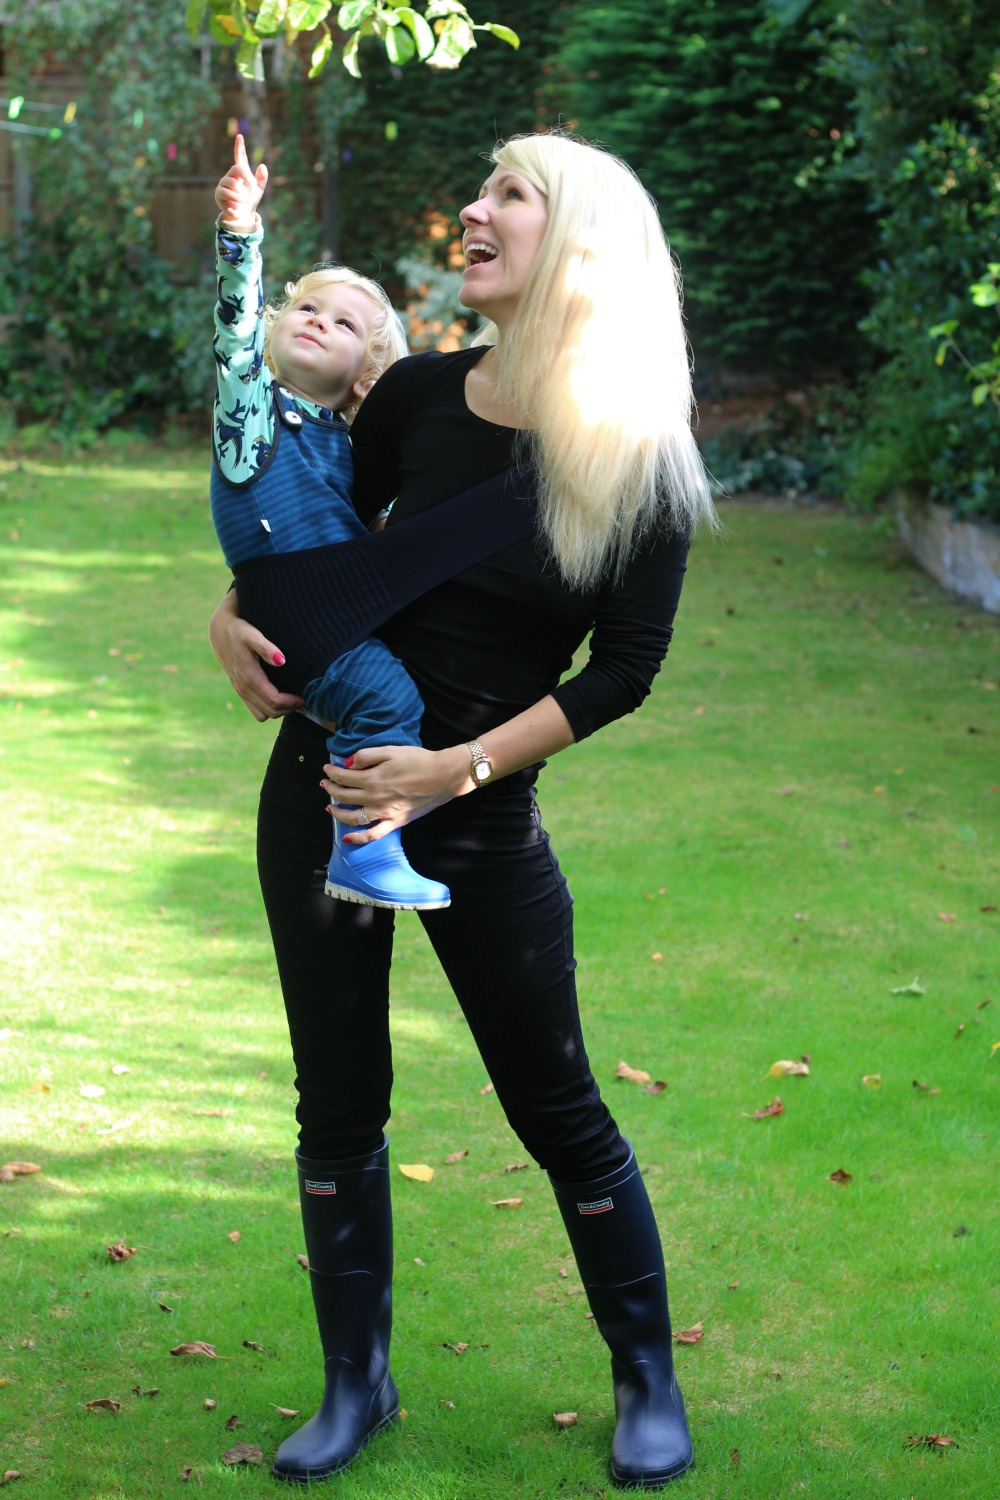 Easy to carry your baby or toddler with the Japanese Suppori sling